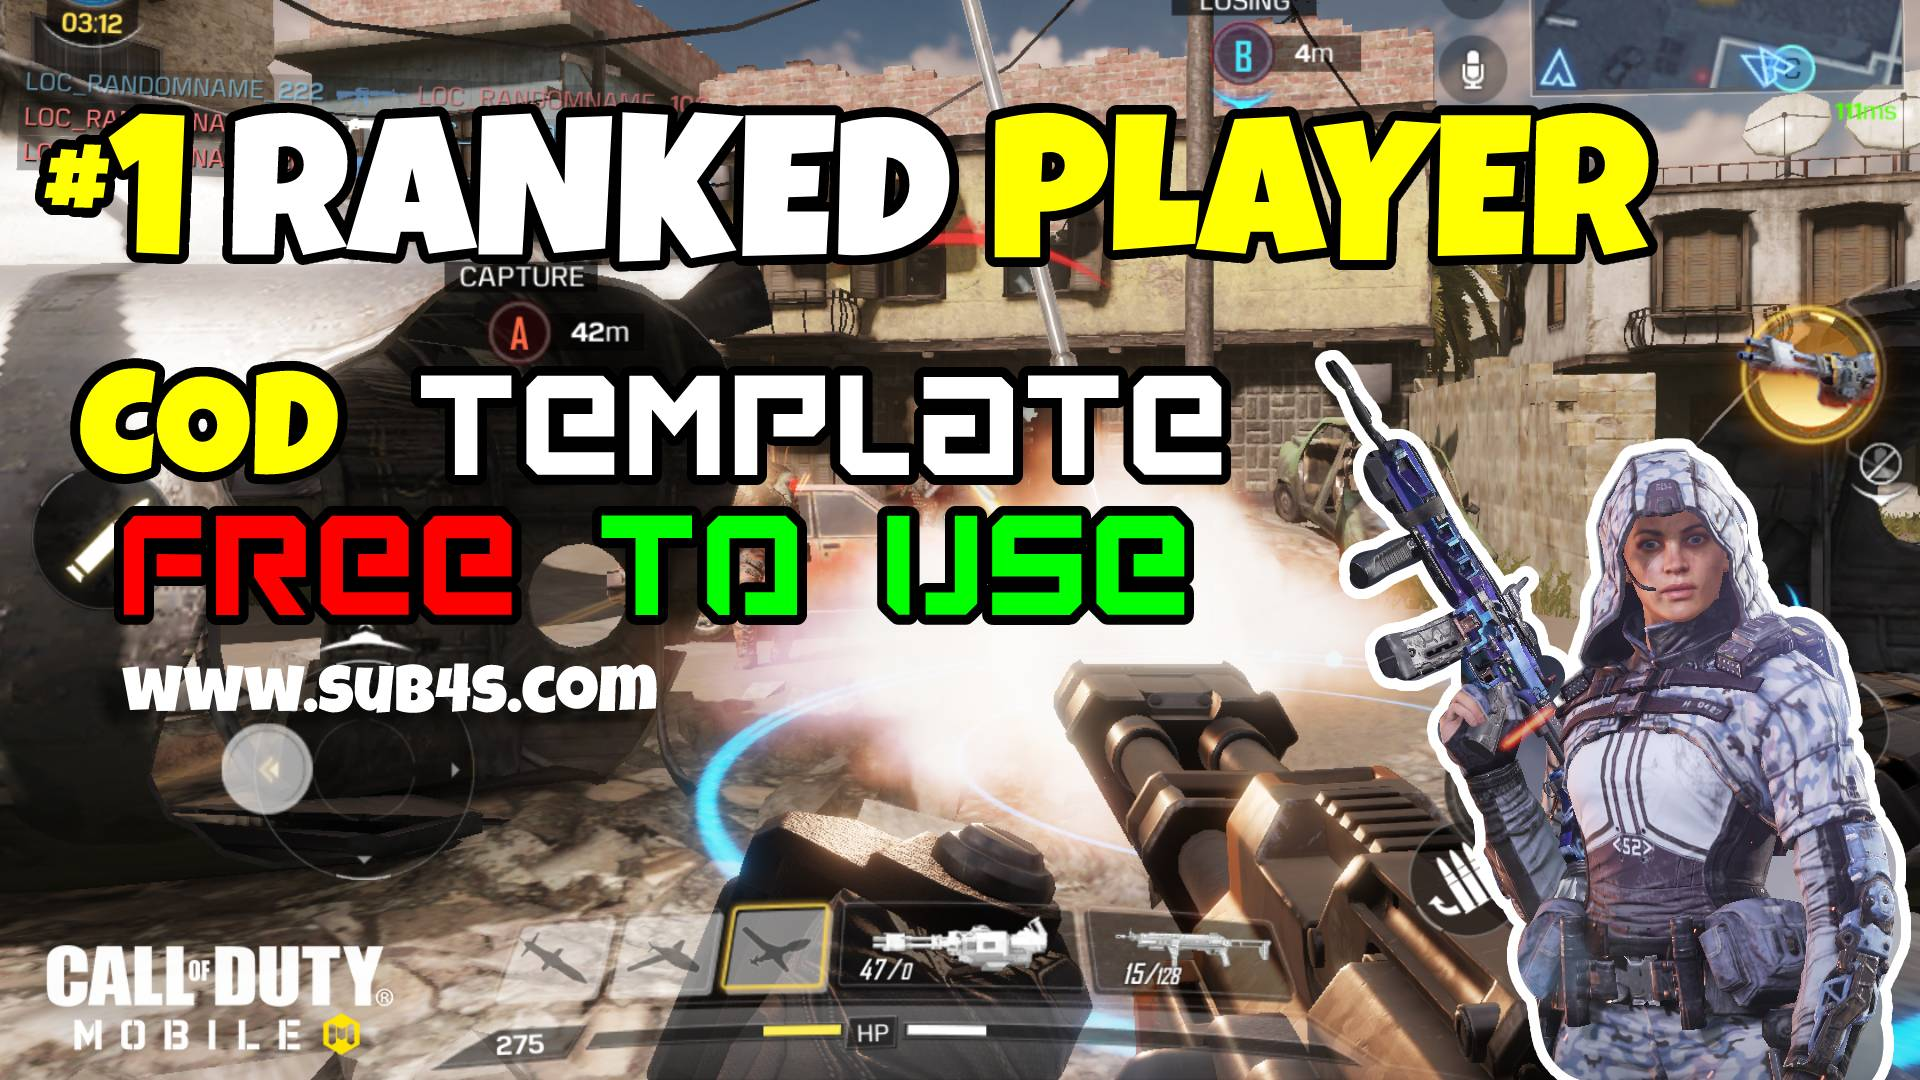 Call Of Duty Mobile YouTube Thumbnail Free to use